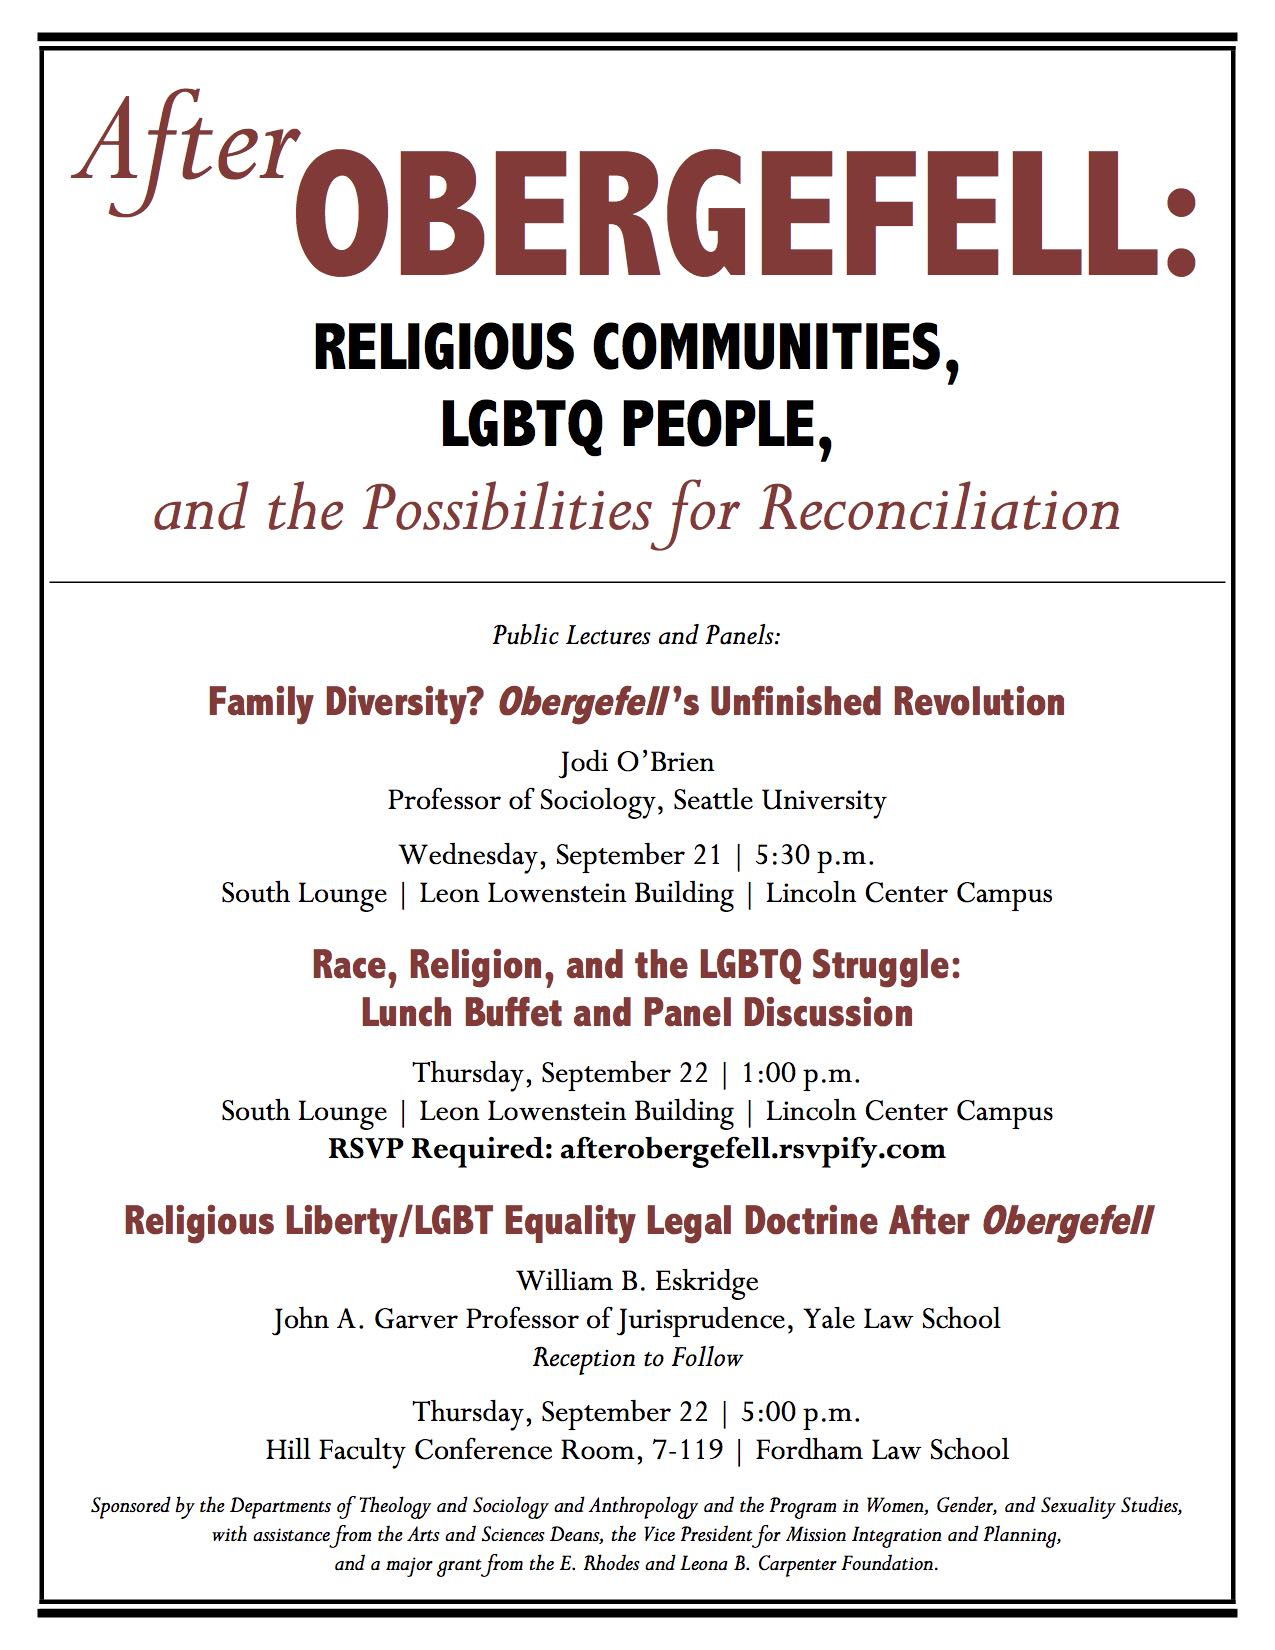 Race, Religion, and the LGBTQ Struggle: Lunch Buffet and